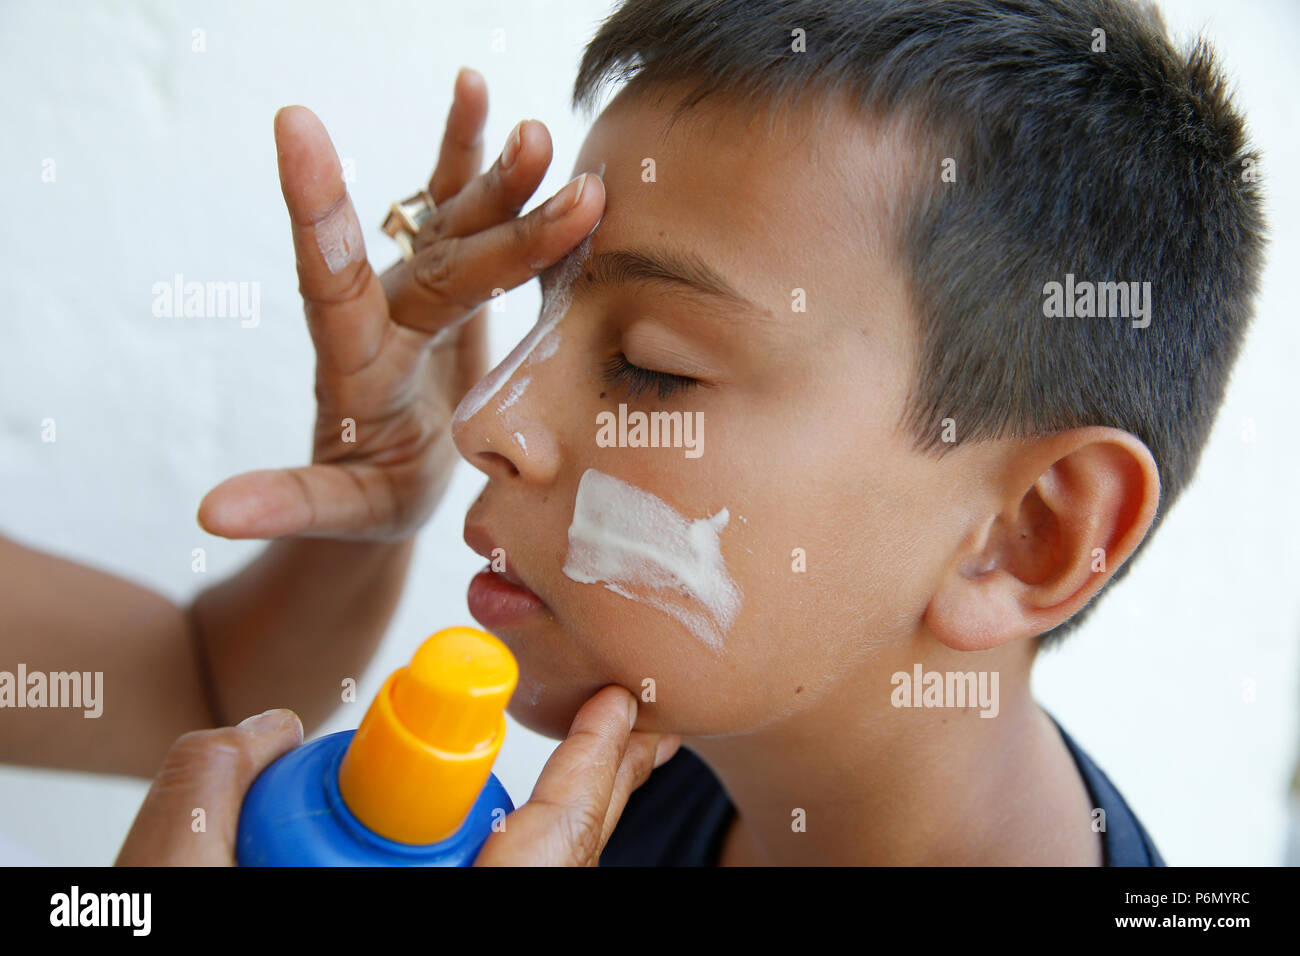 Mother putting sun protection cream on her son's face in Salento, Italy. - Stock Image